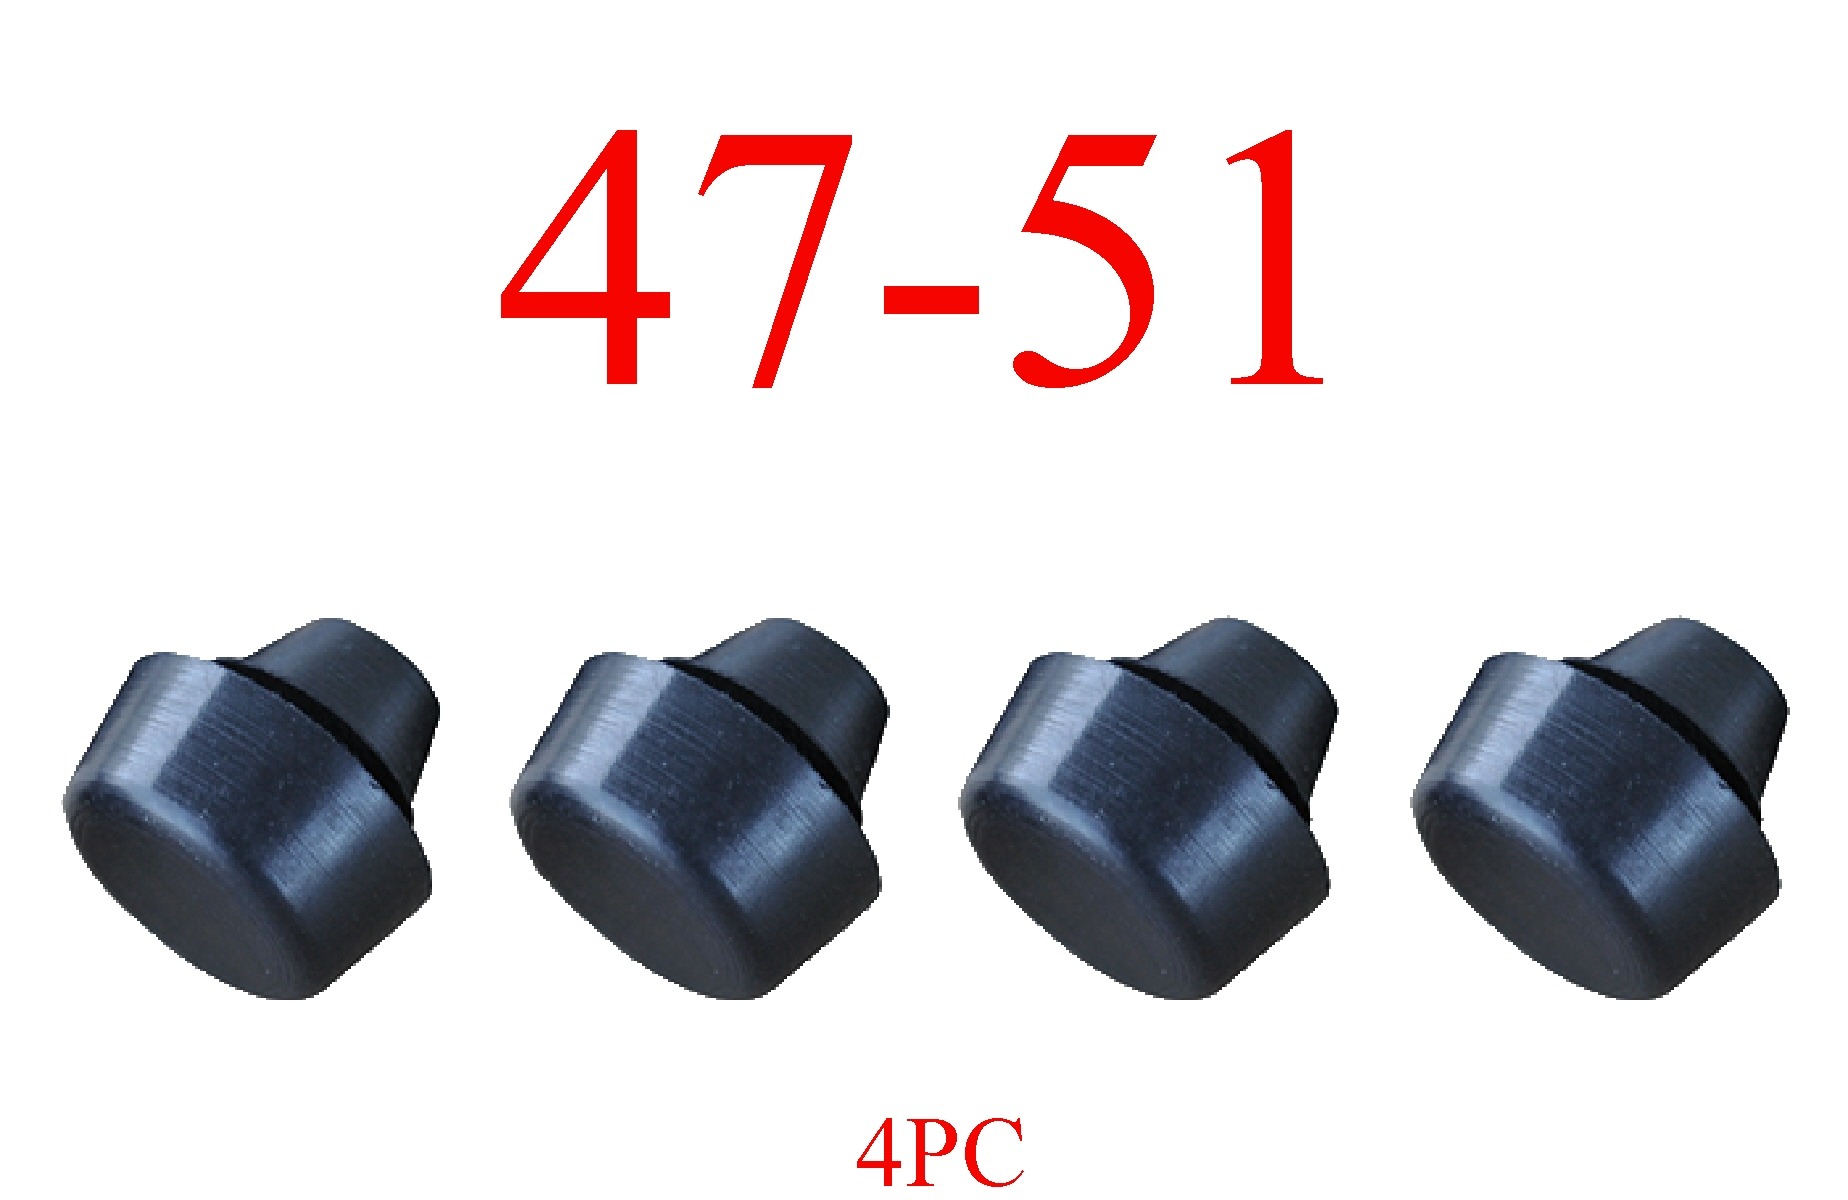 47-51 Chevy 4Pc Rubber Door Bumper Set